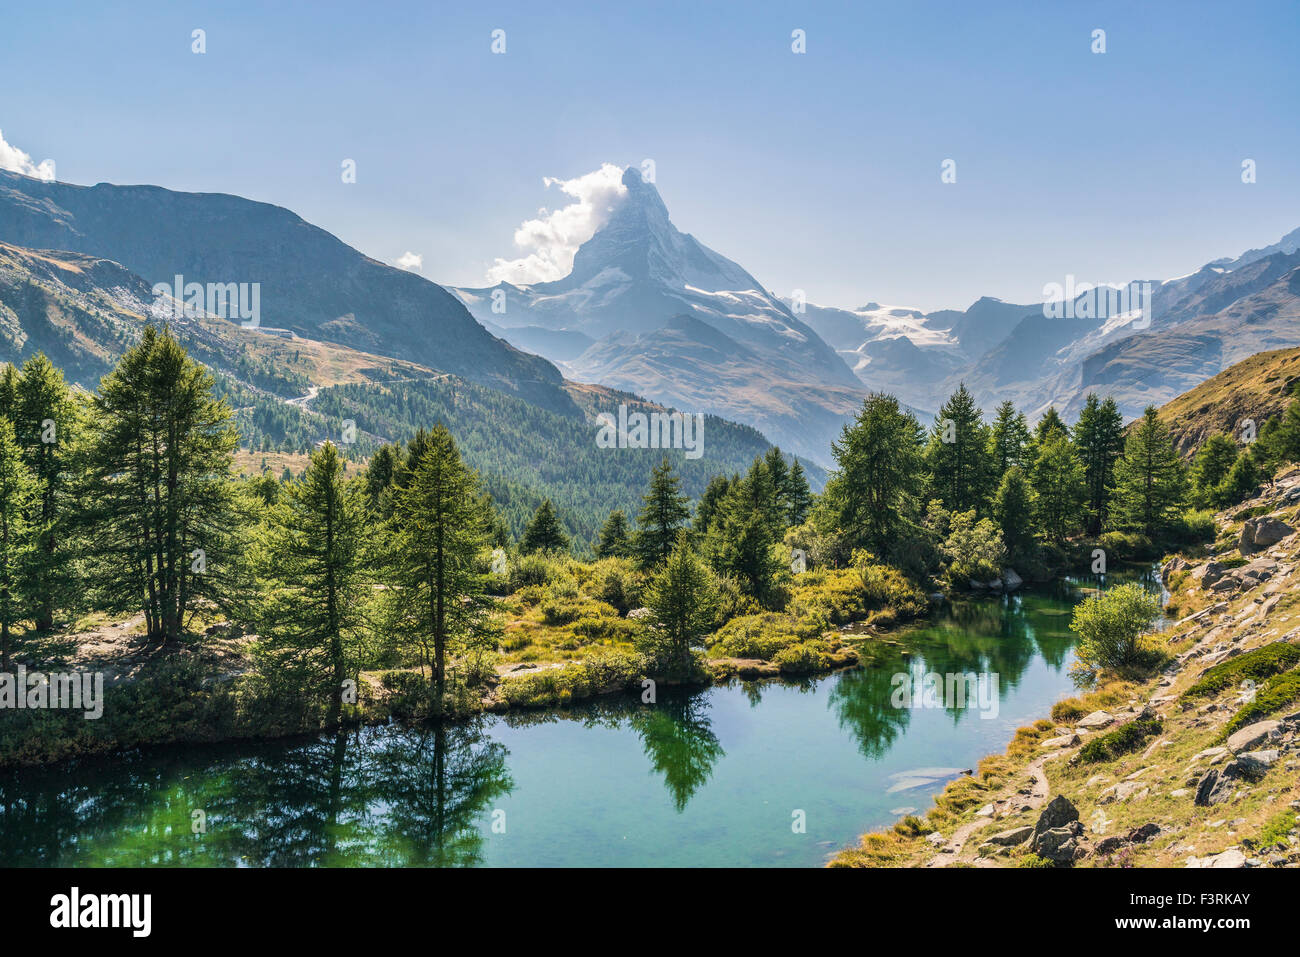 The Grindjisee with view of the Matterhorn Stock Photo